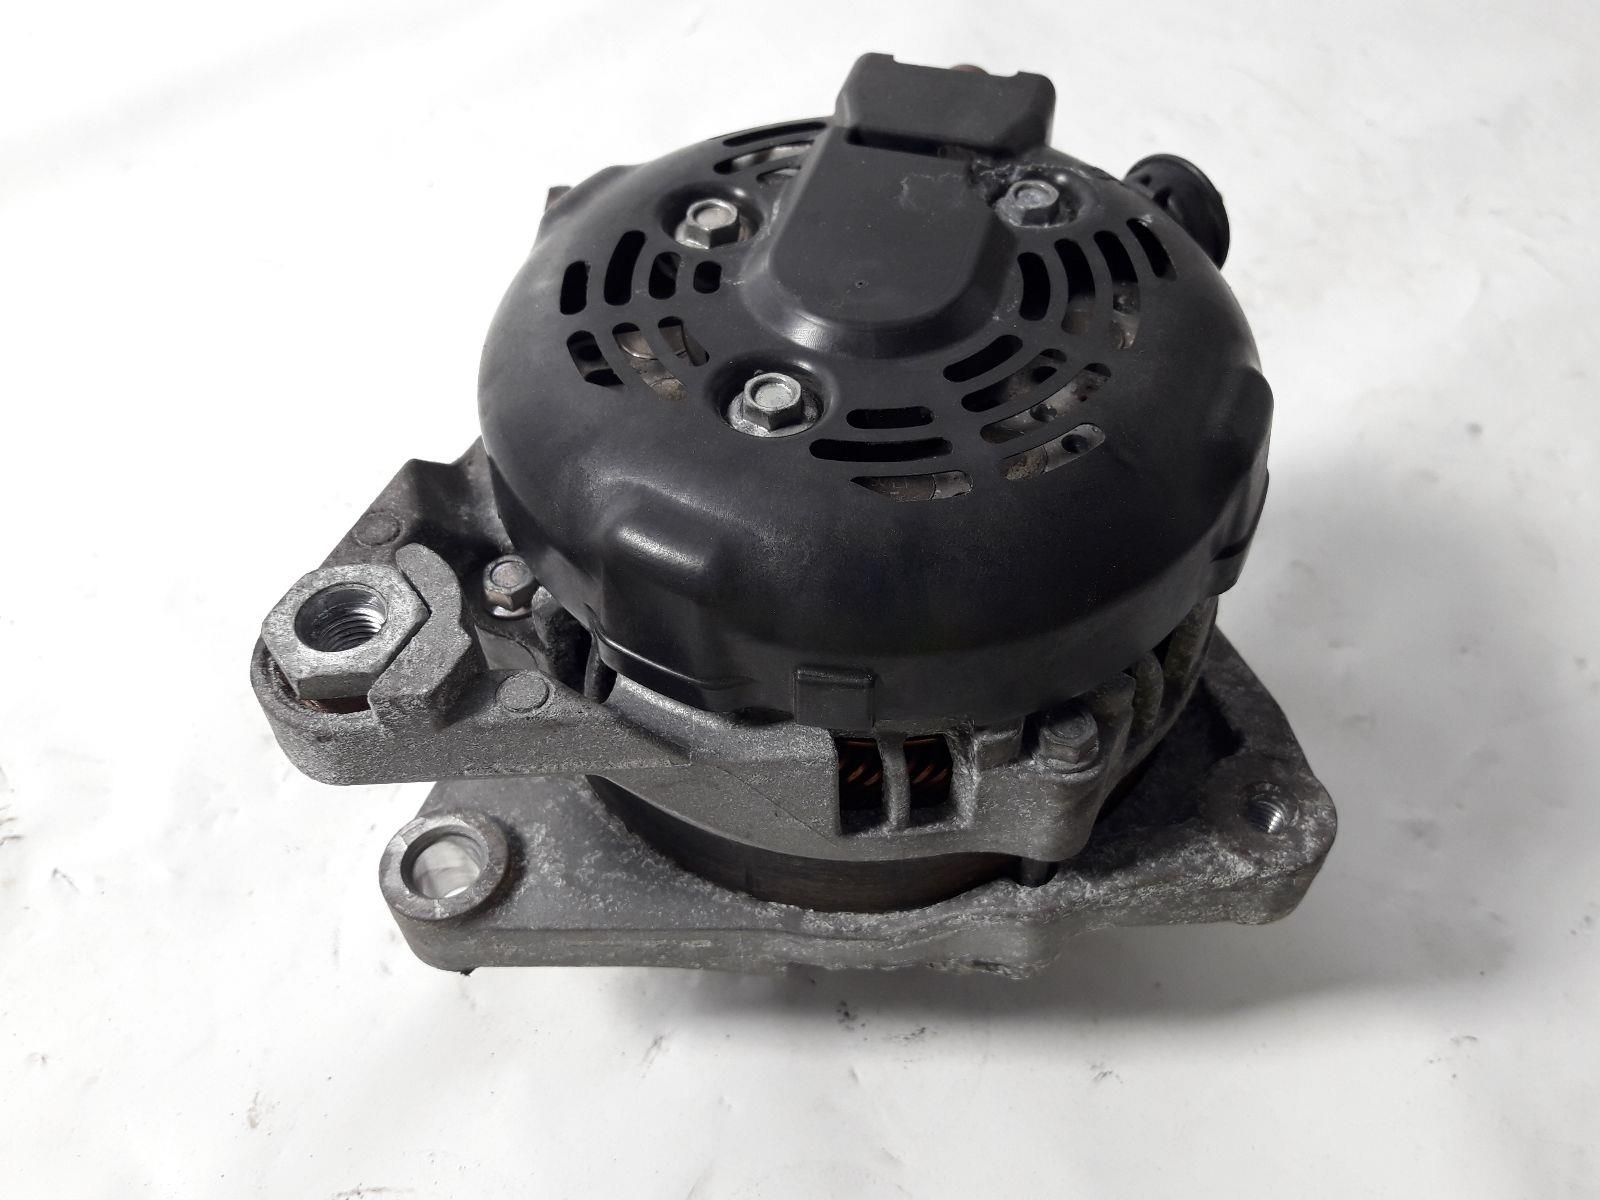 Toyota Yaris 2011 To 2014 Alternator Diesel Manual For Sale From Wiring Diagram Tr 14 1nd Tv Warranty 7321666